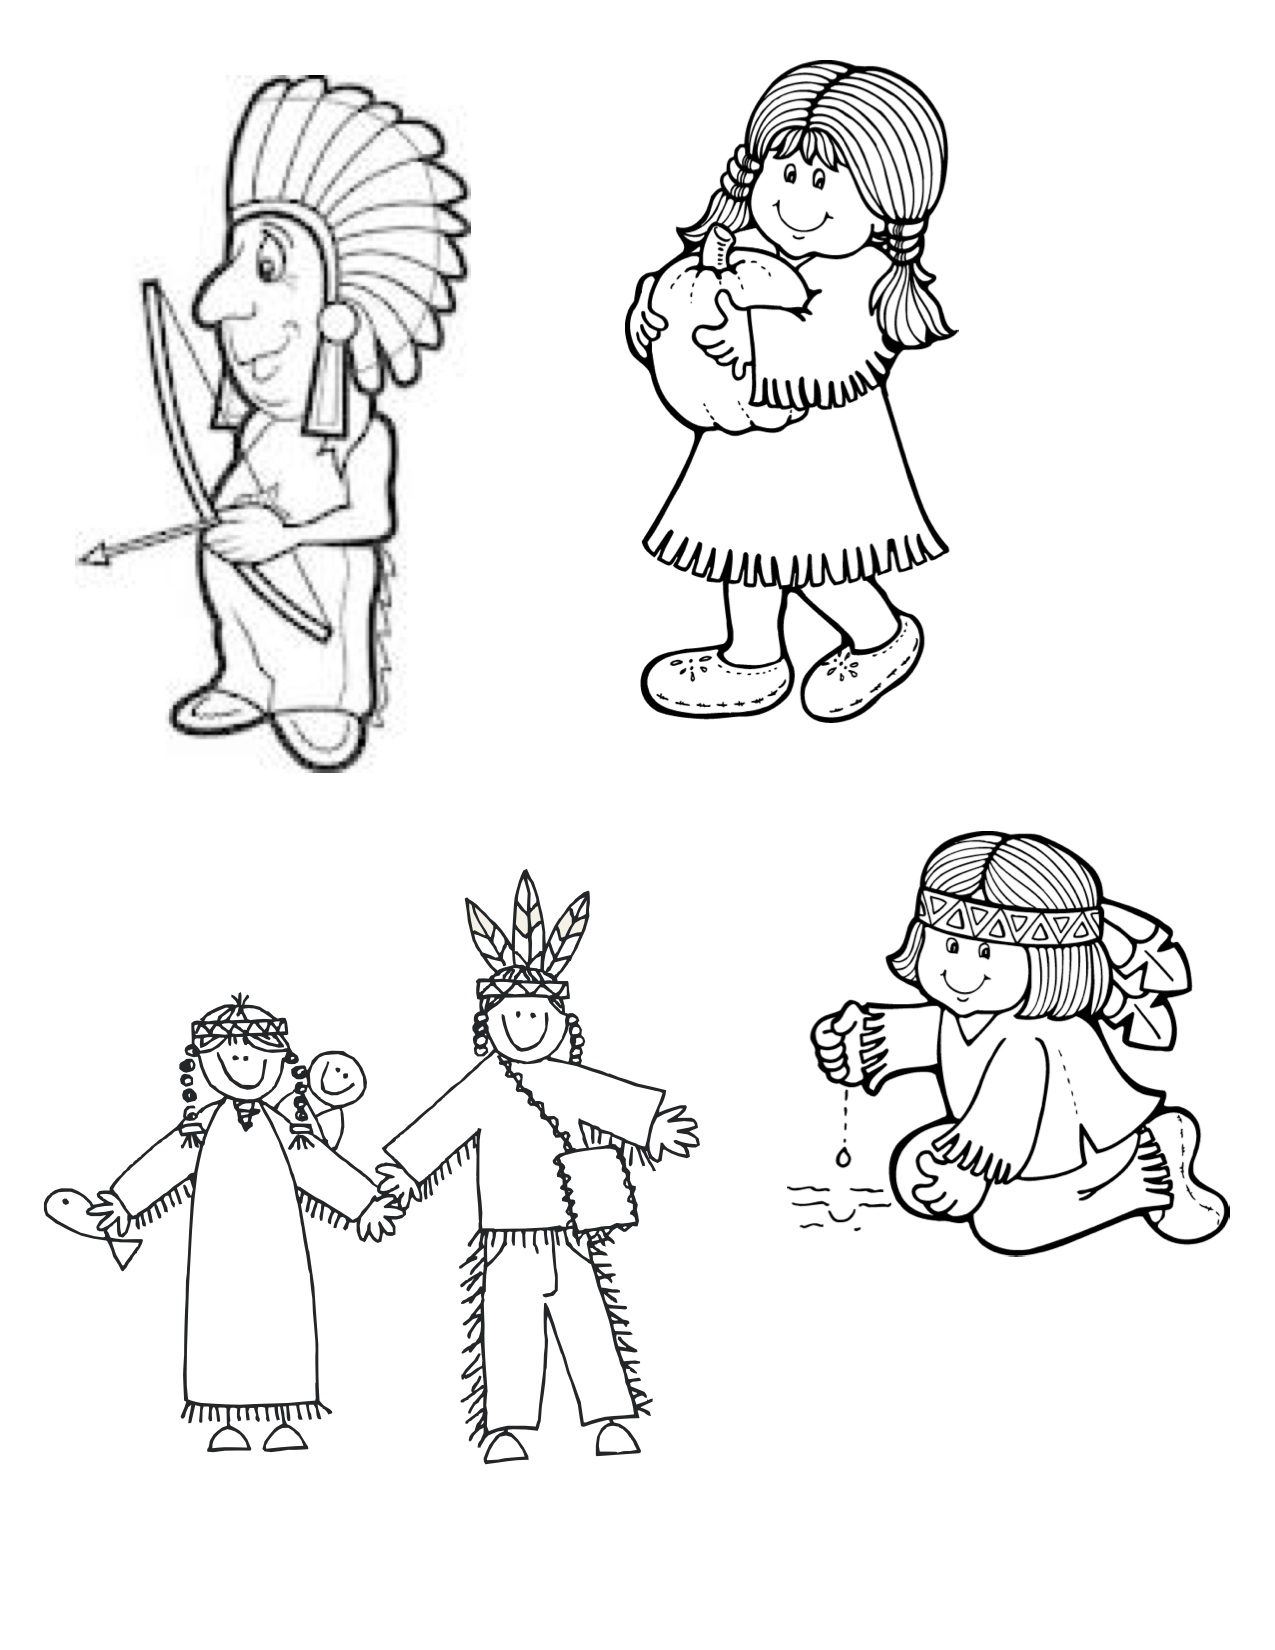 child drawing clipart at getdrawings com free for personal use rh getdrawings com